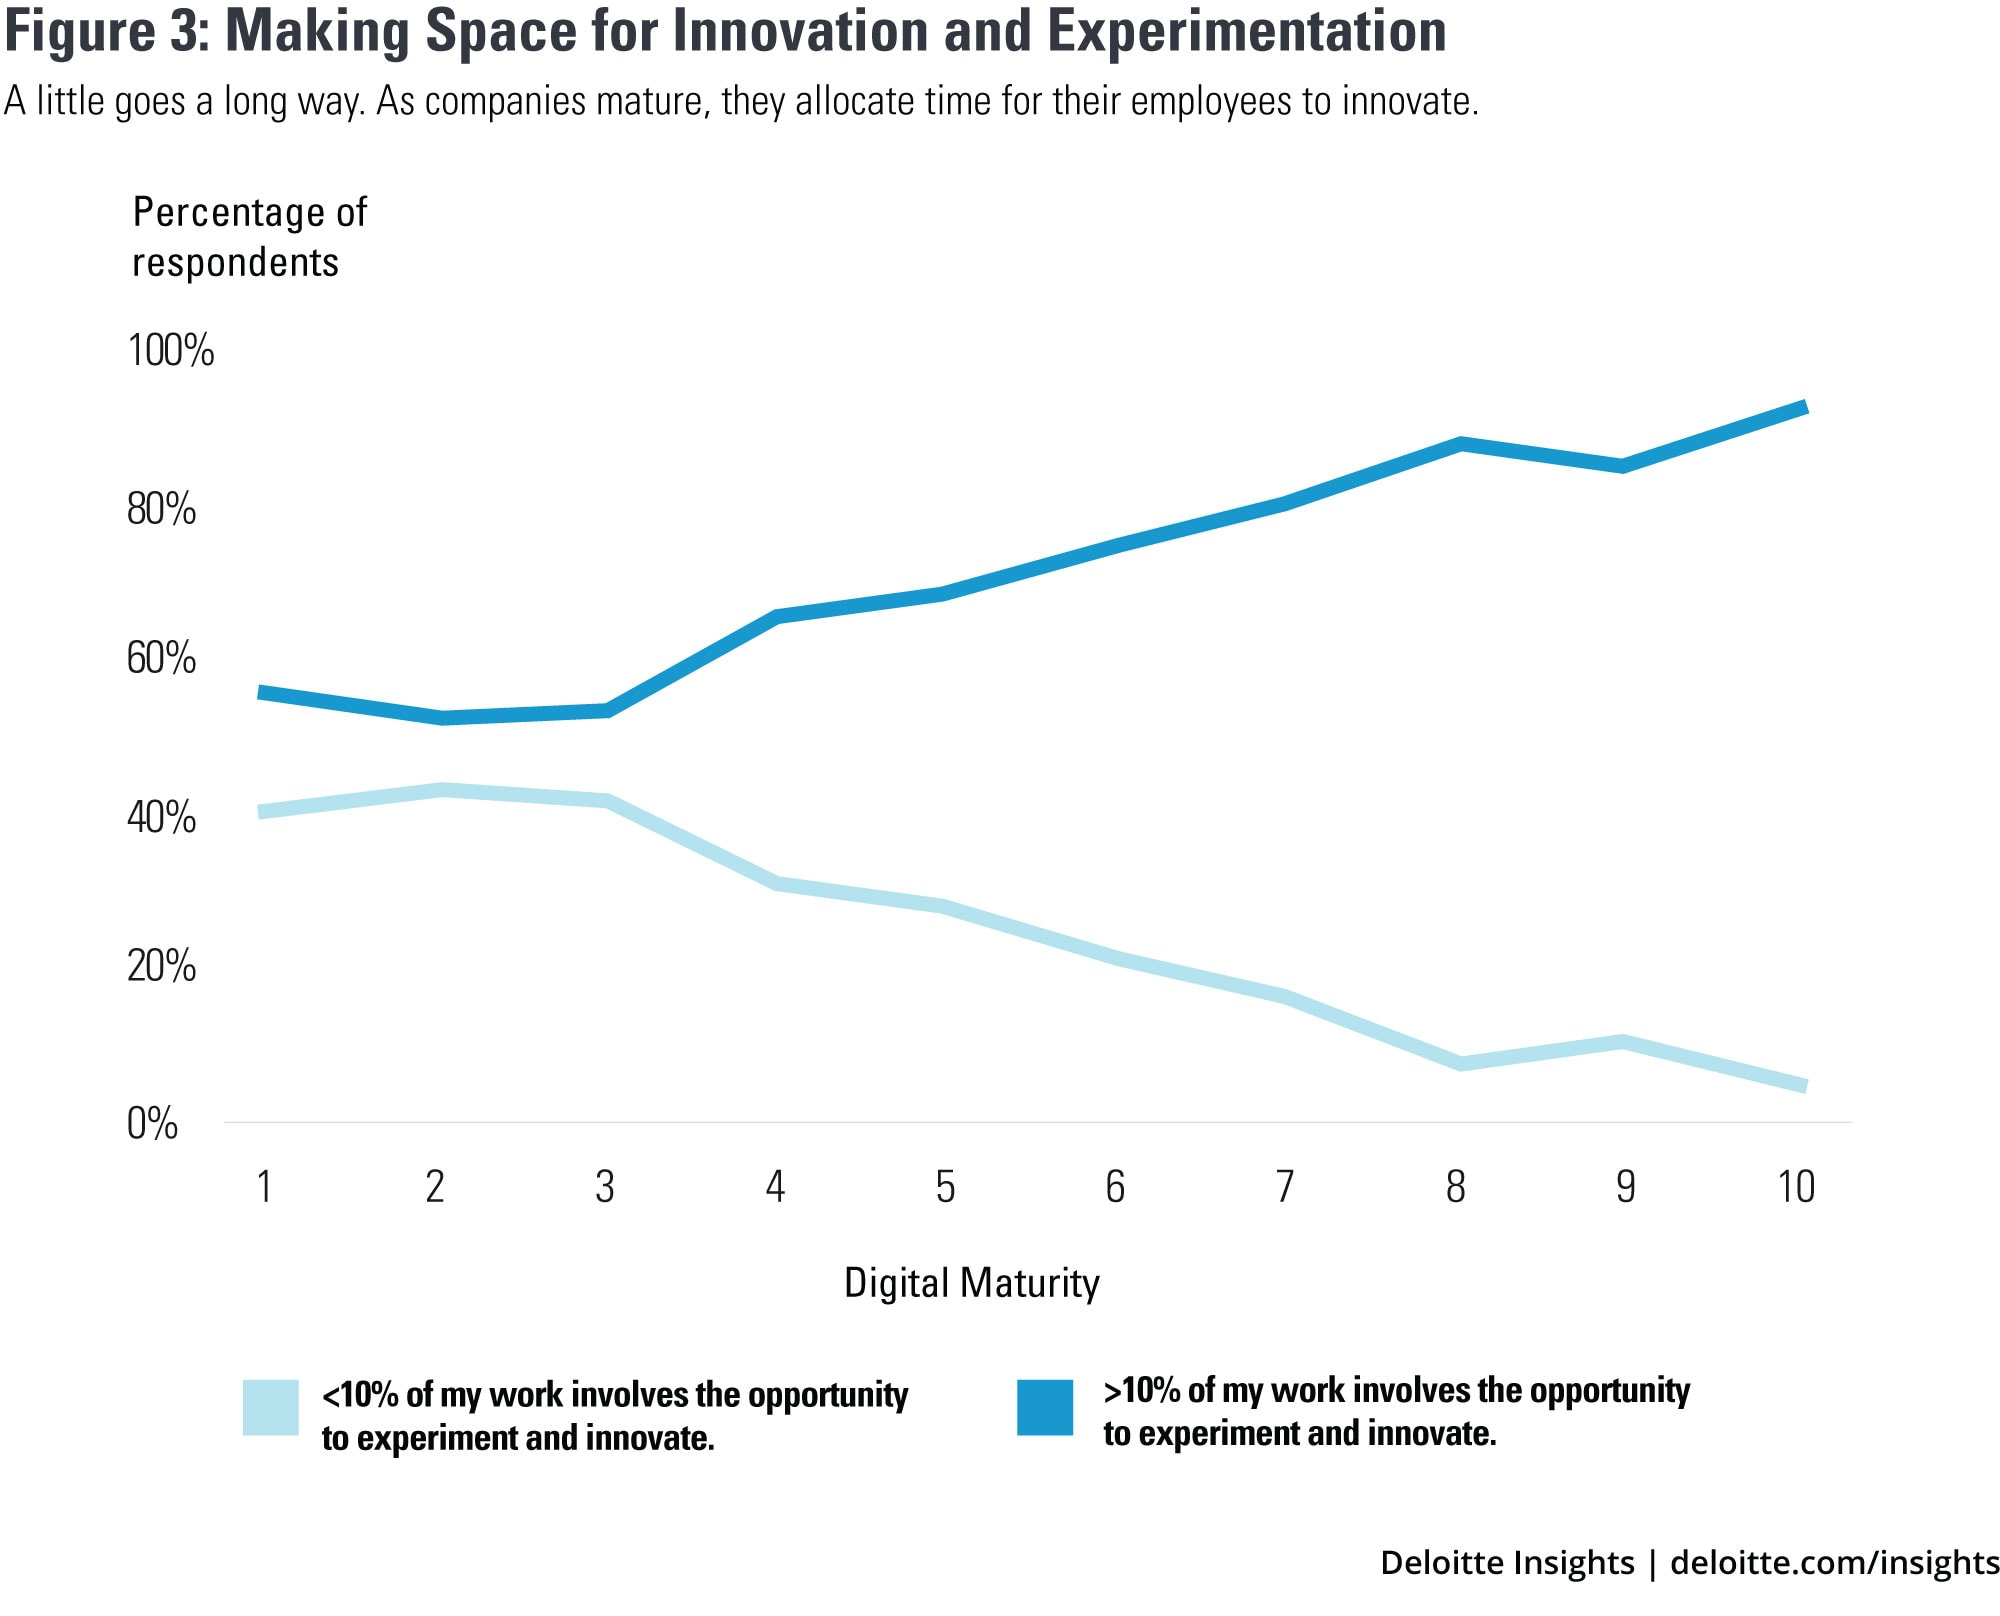 Making space for innovation and experimentation